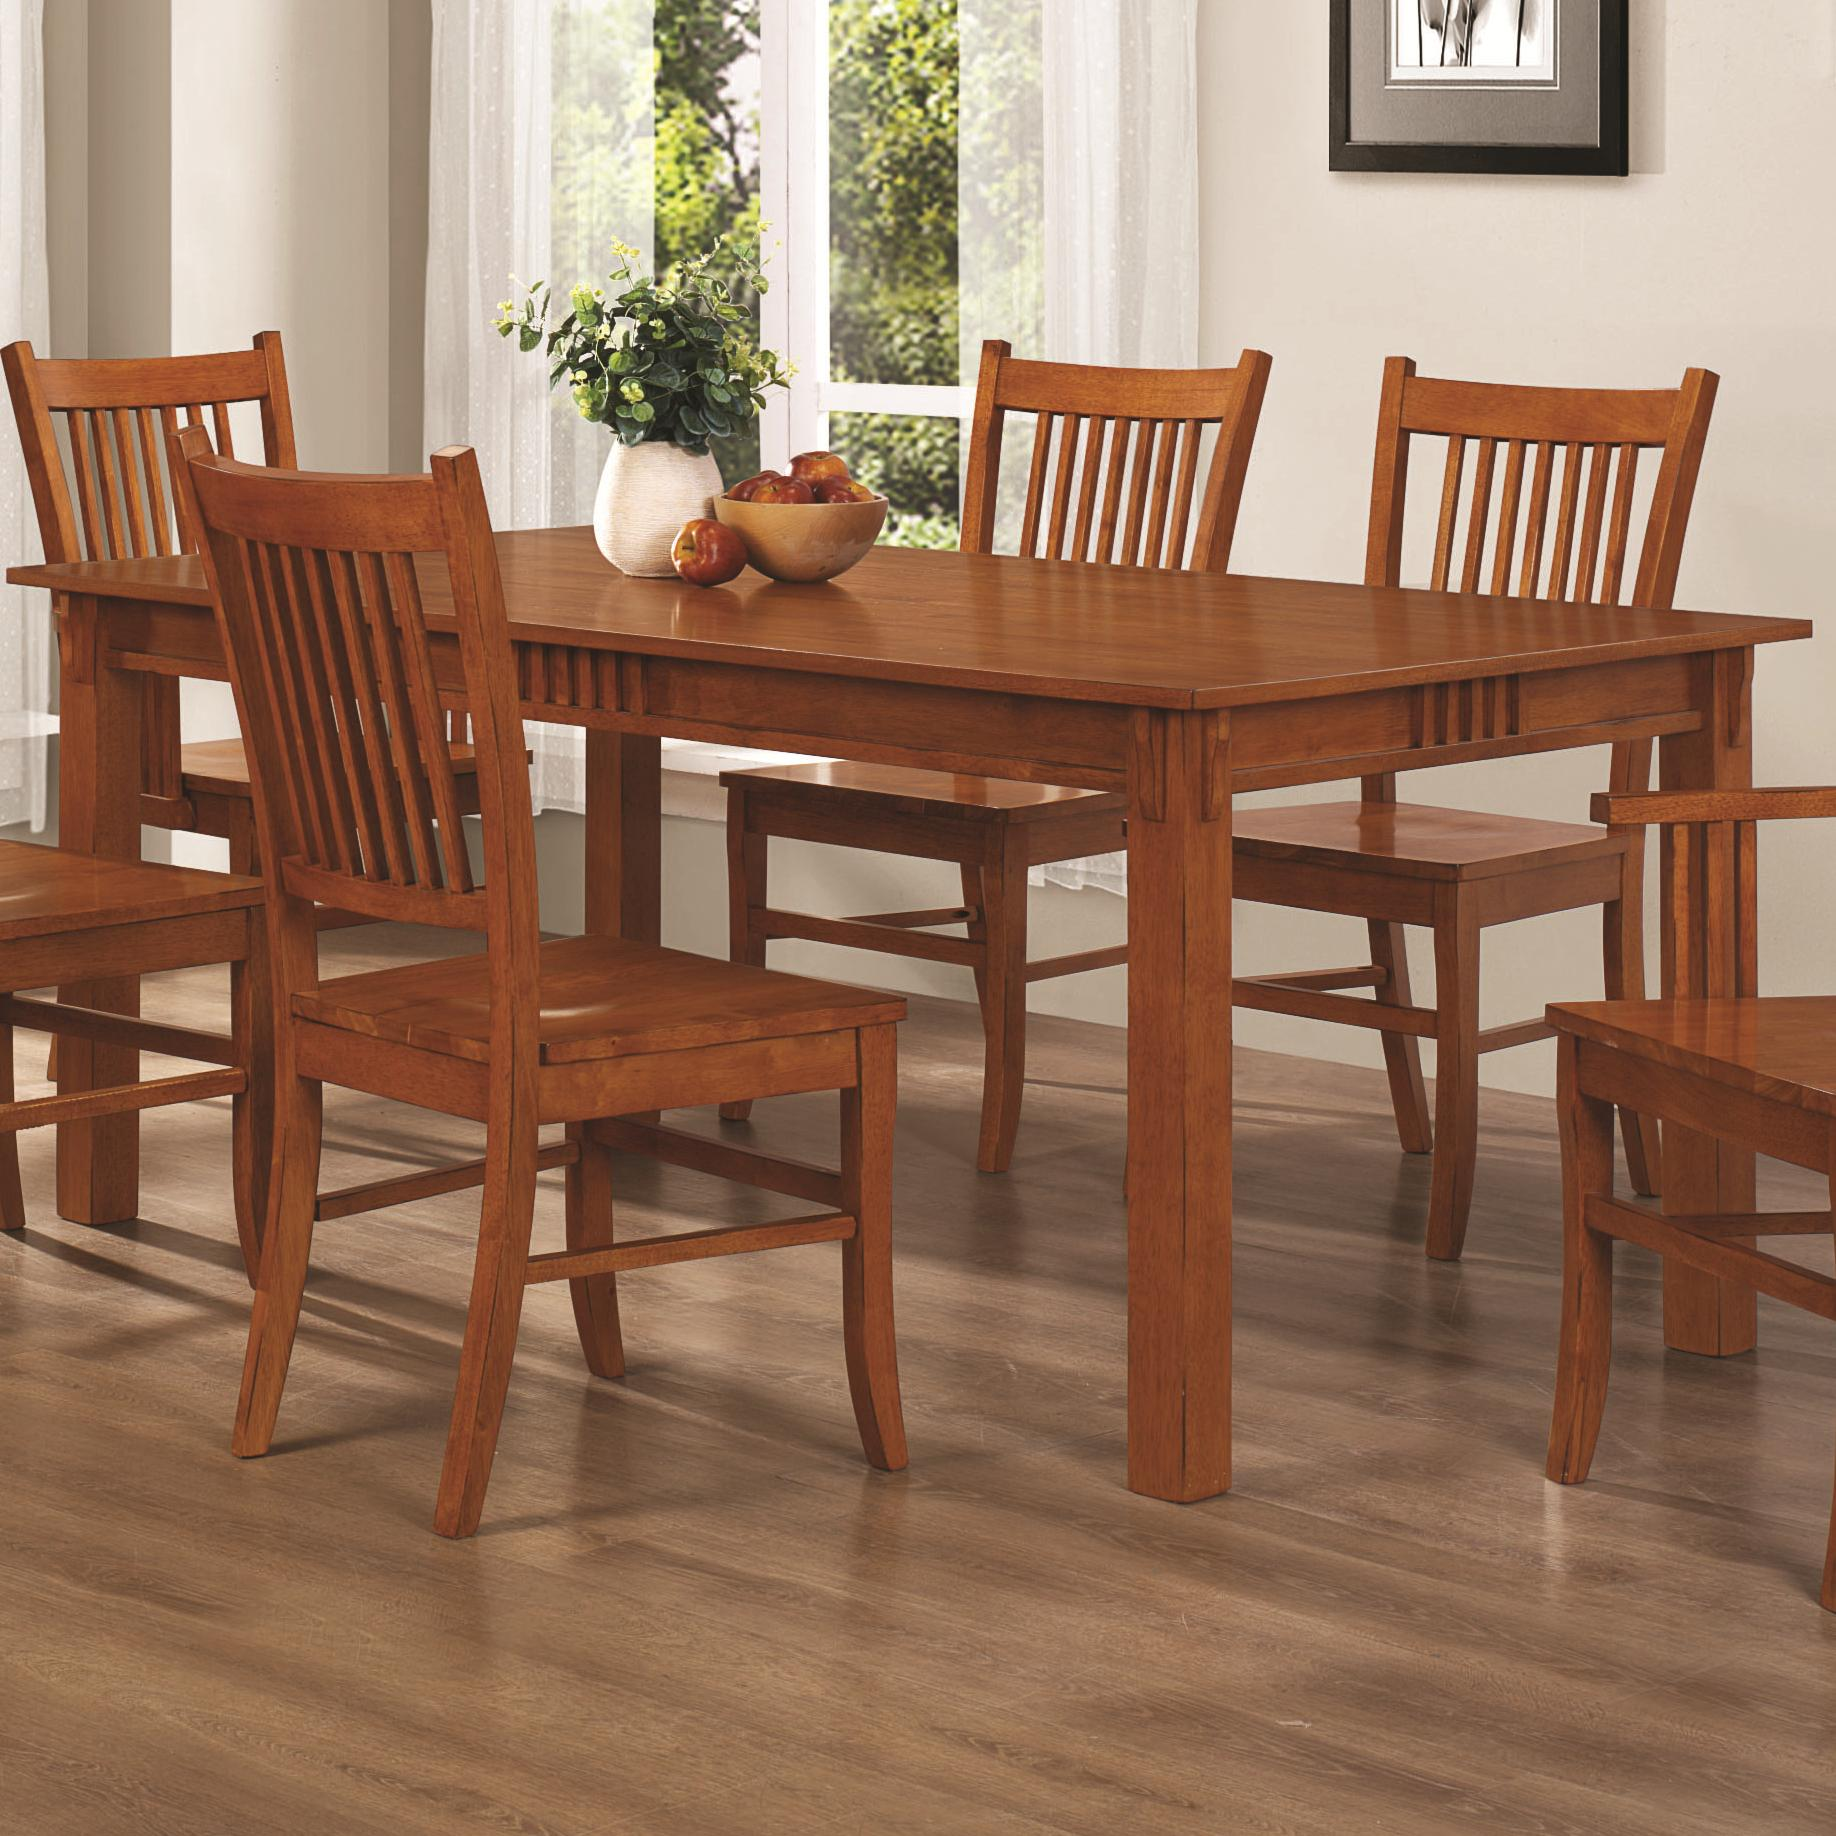 Marbrisa Dining Table by Coaster at Prime Brothers Furniture